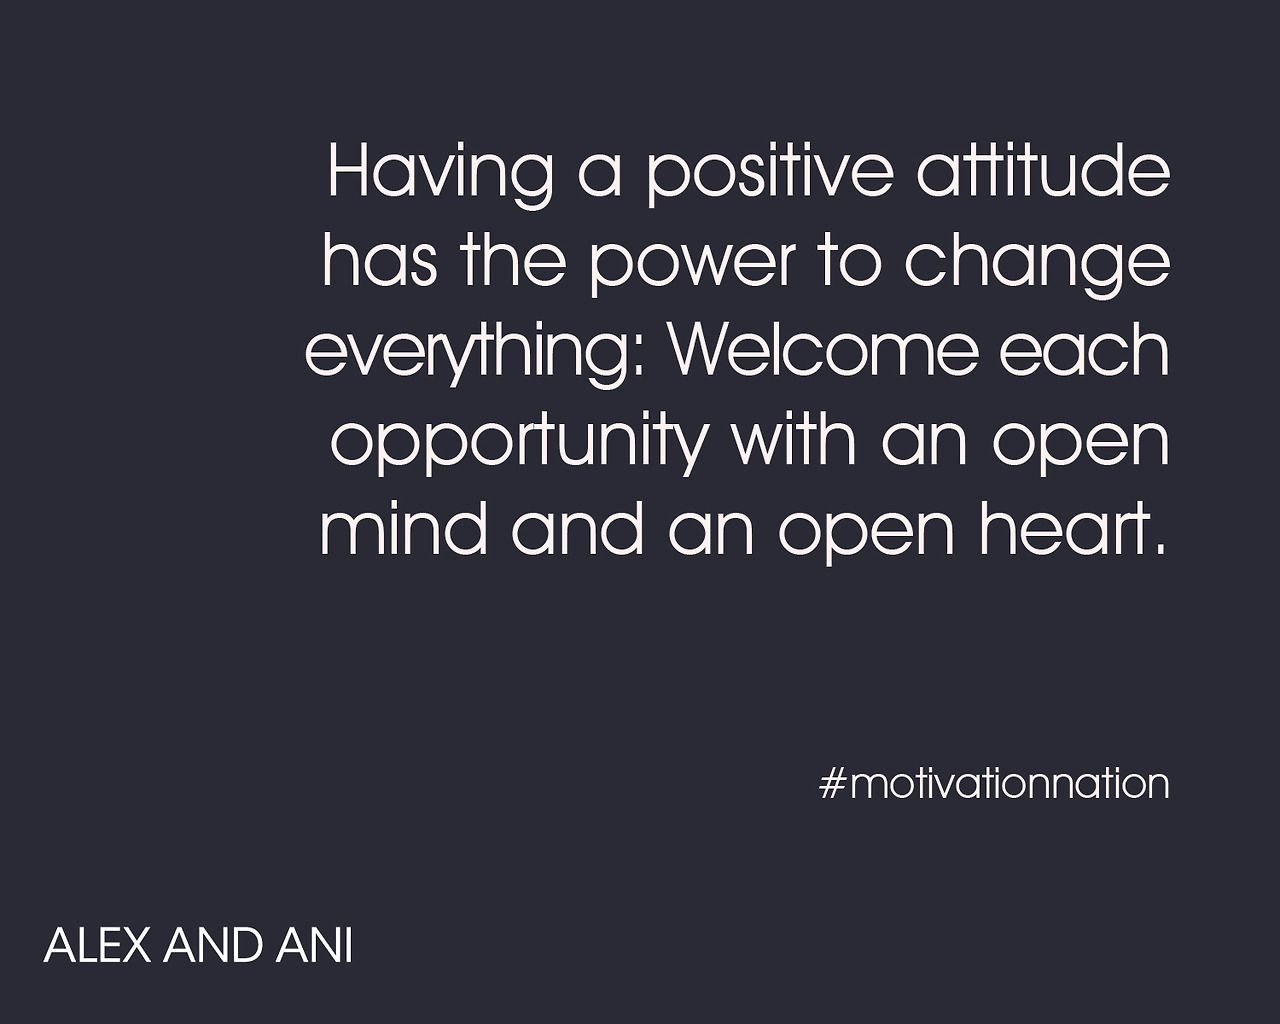 Welcome Each Opportunity With An Open Mind And An Open Heart Wise Words Quotes Words To Live By Quotes Positivity